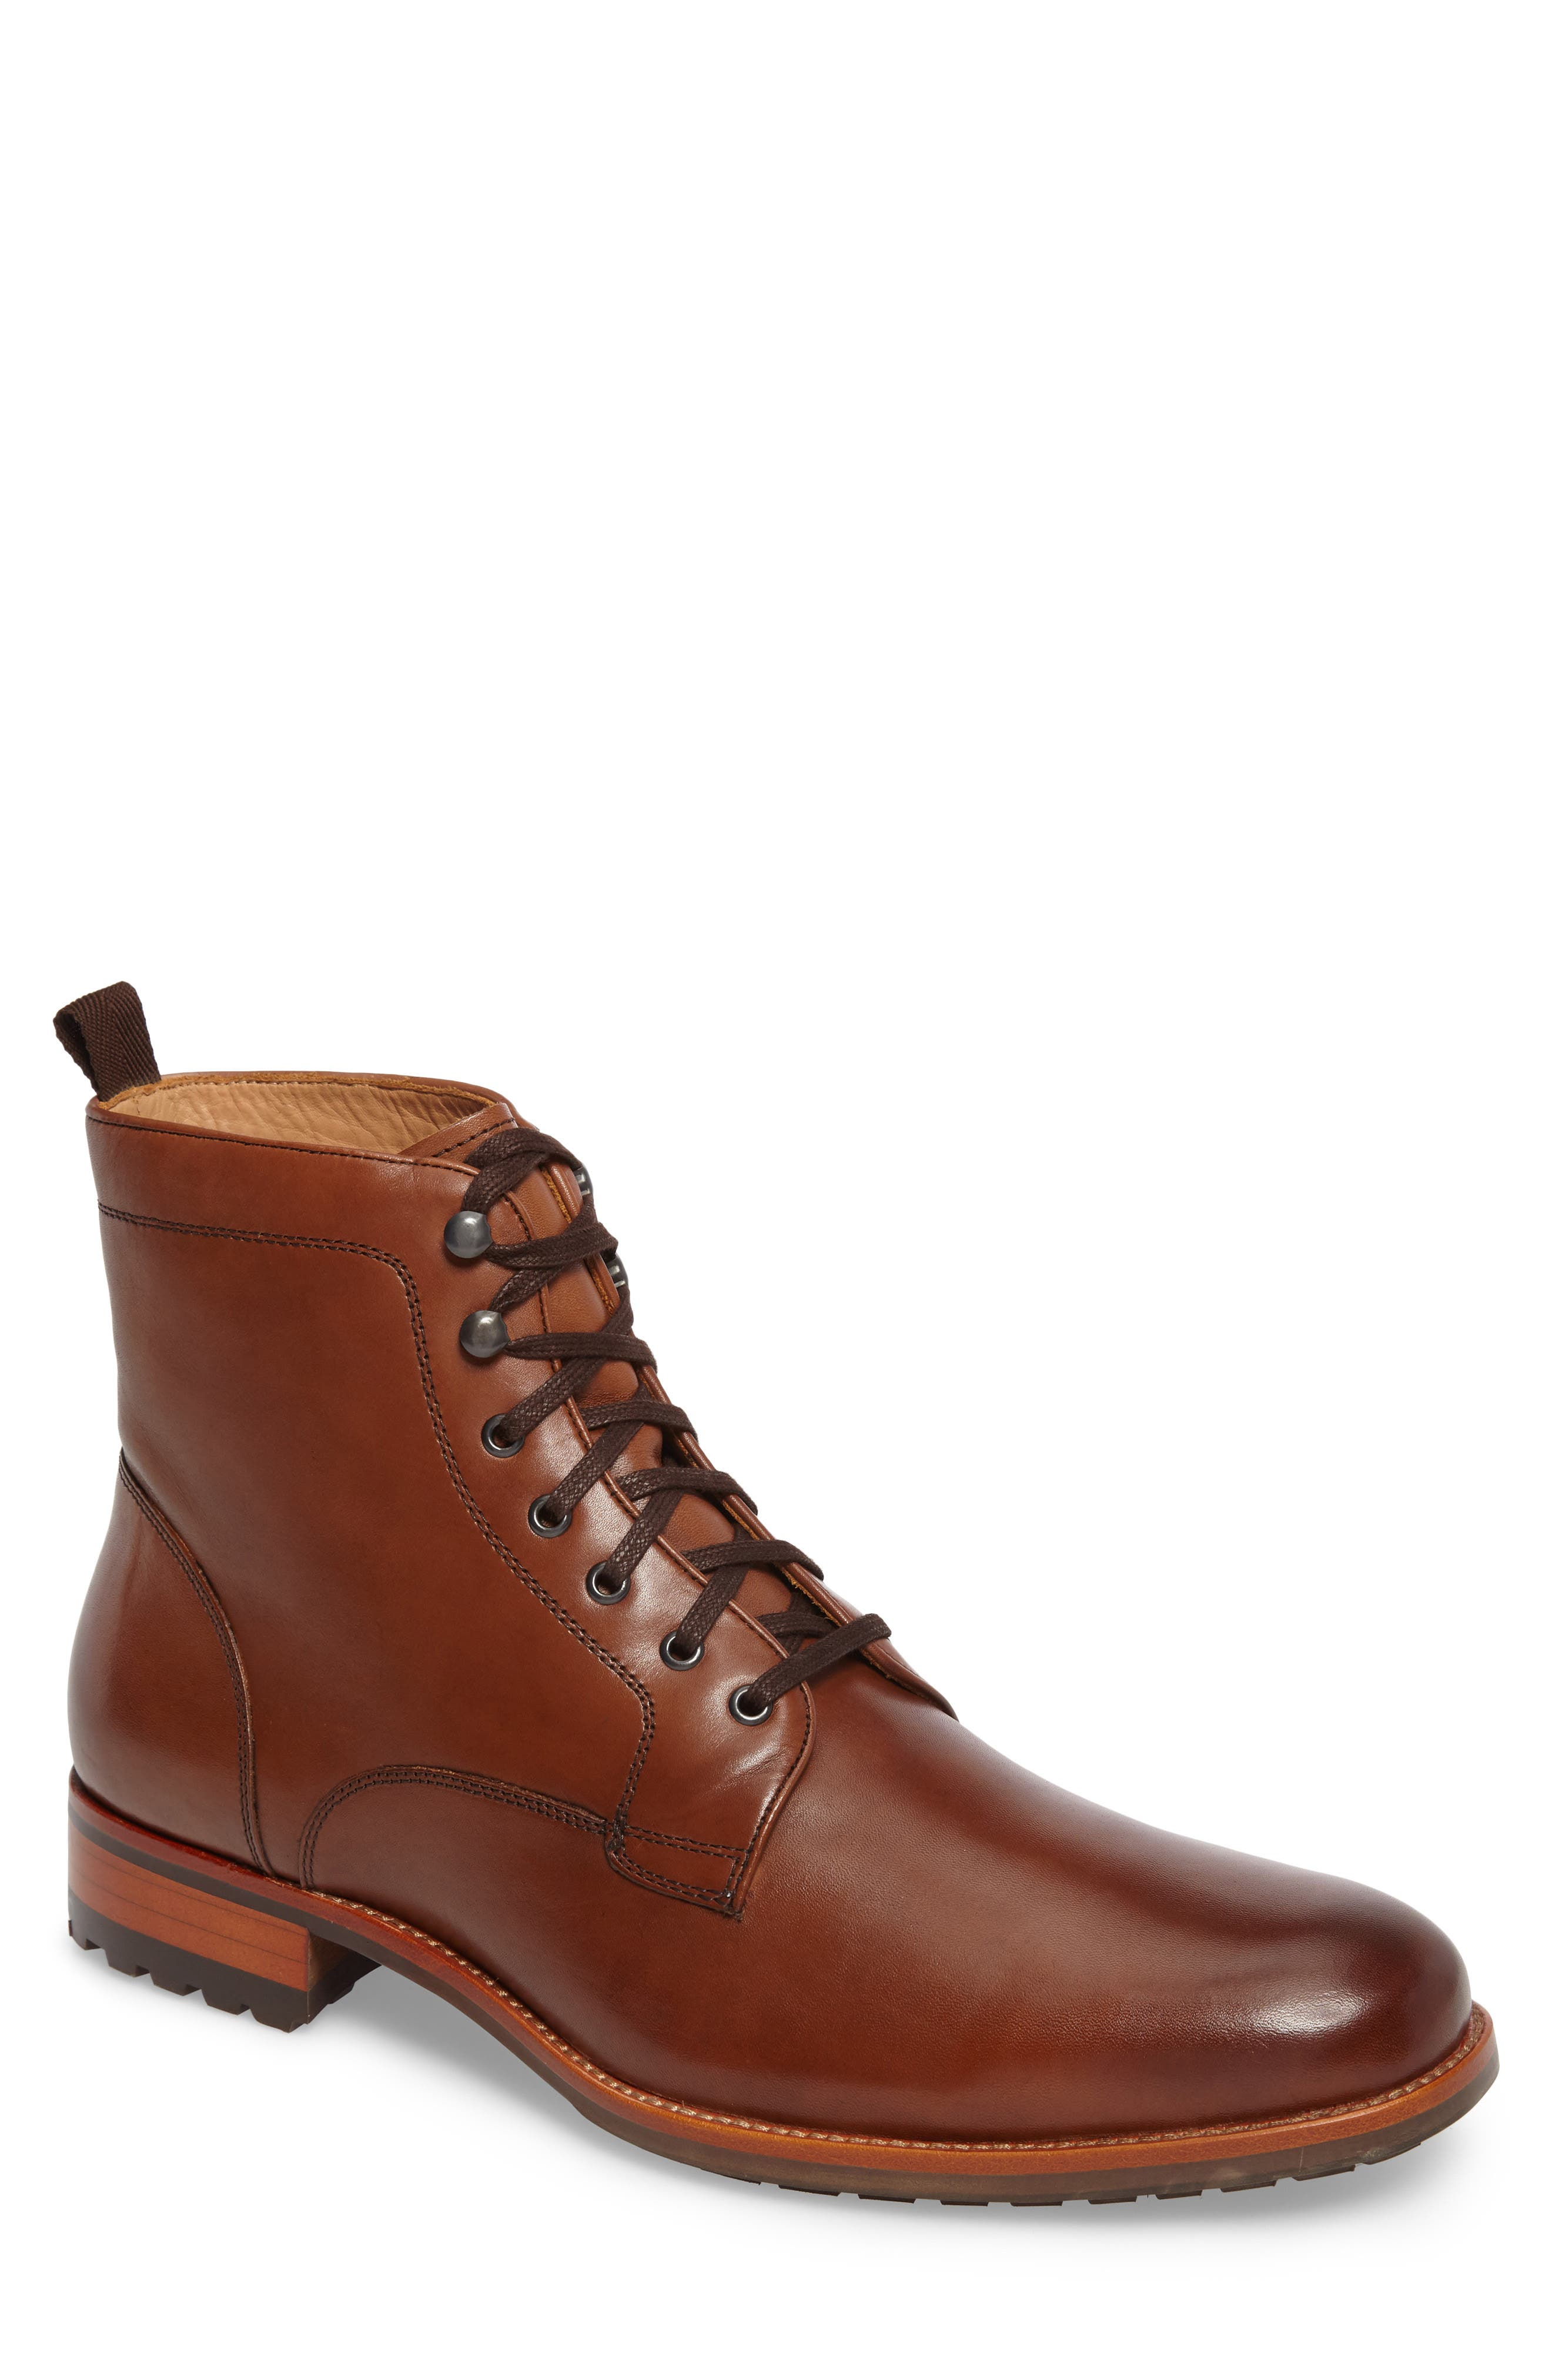 Axeford Plain Toe Boot,                             Main thumbnail 1, color,                             Luggage Leather